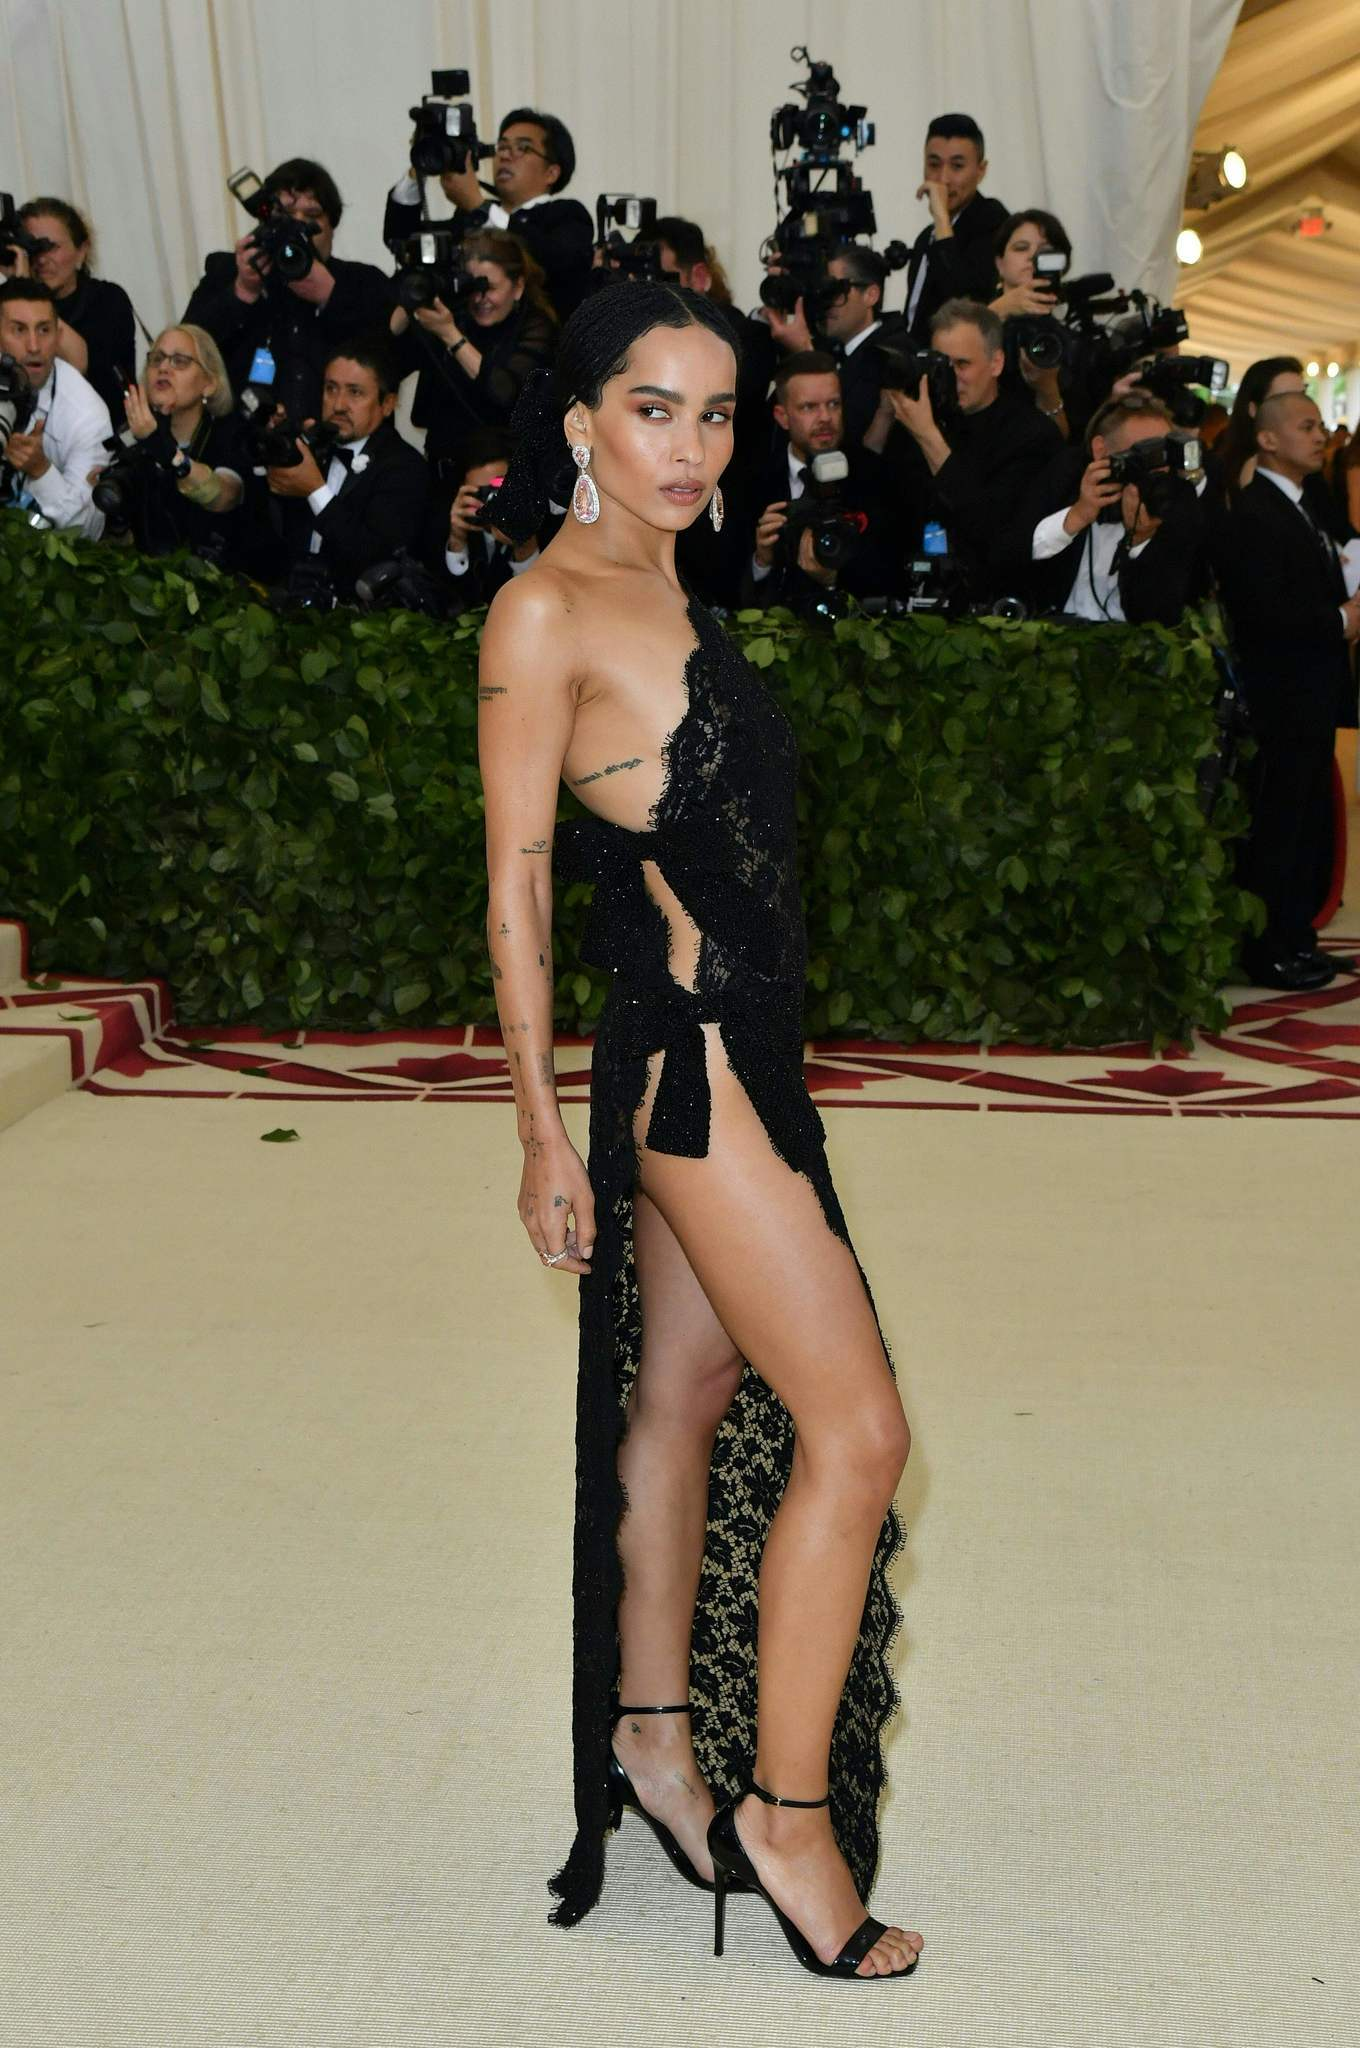 Zoë Kravitz is part of the group of stars who opted for a goth-style look for the Met Gala.